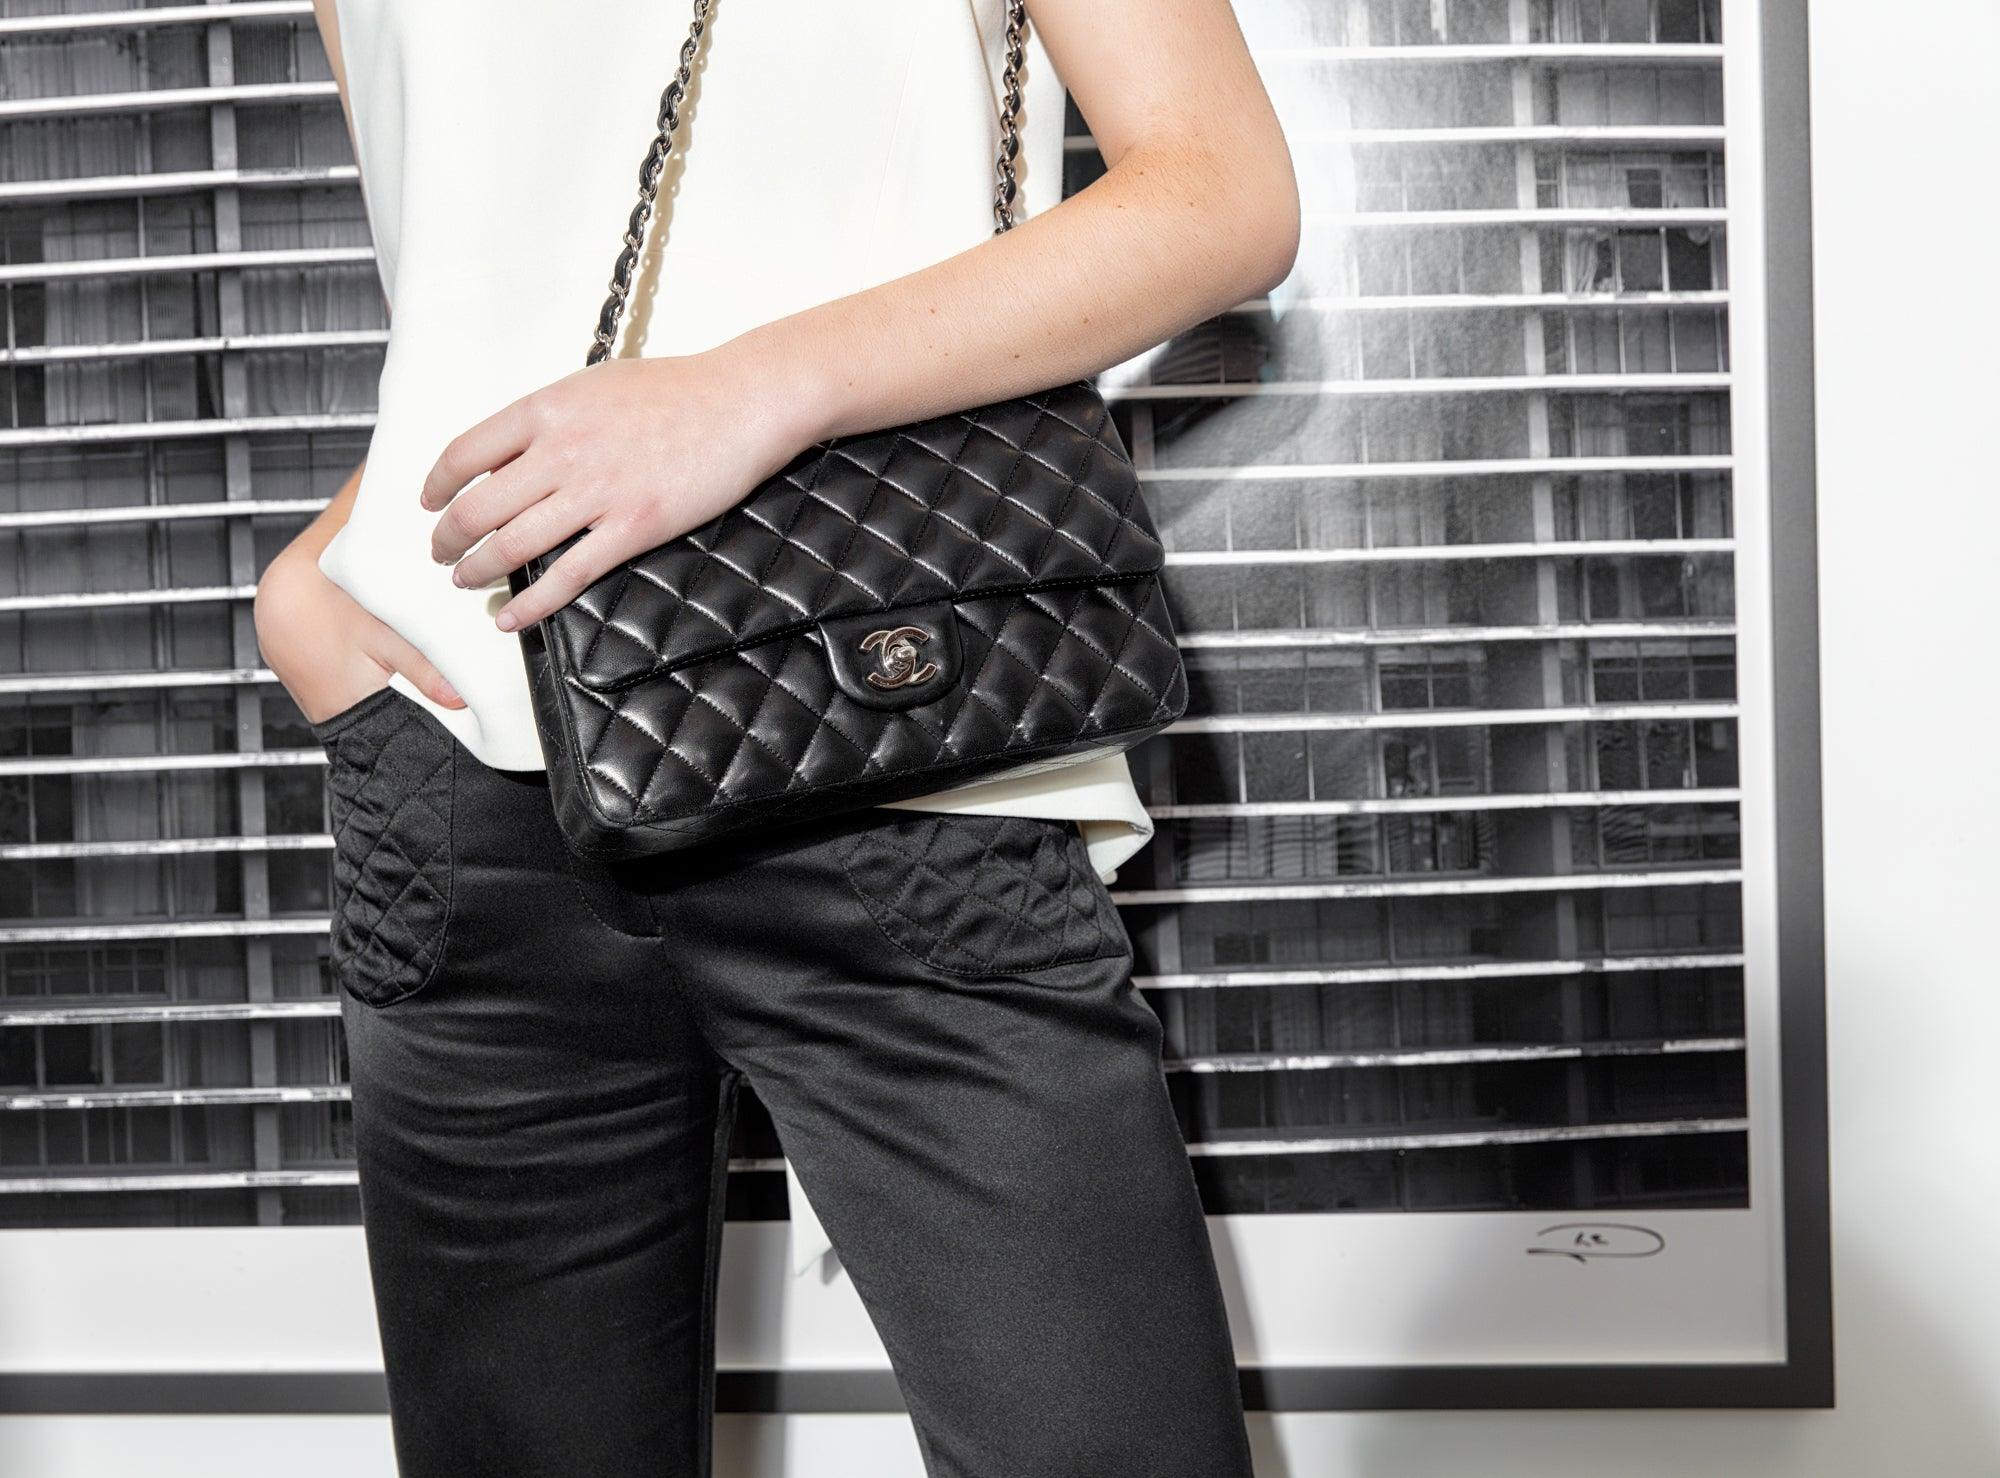 554c44f24e392 Shopping pre-owned luxury bags doesn t feel quite as straightforward as  buying used designer clothing